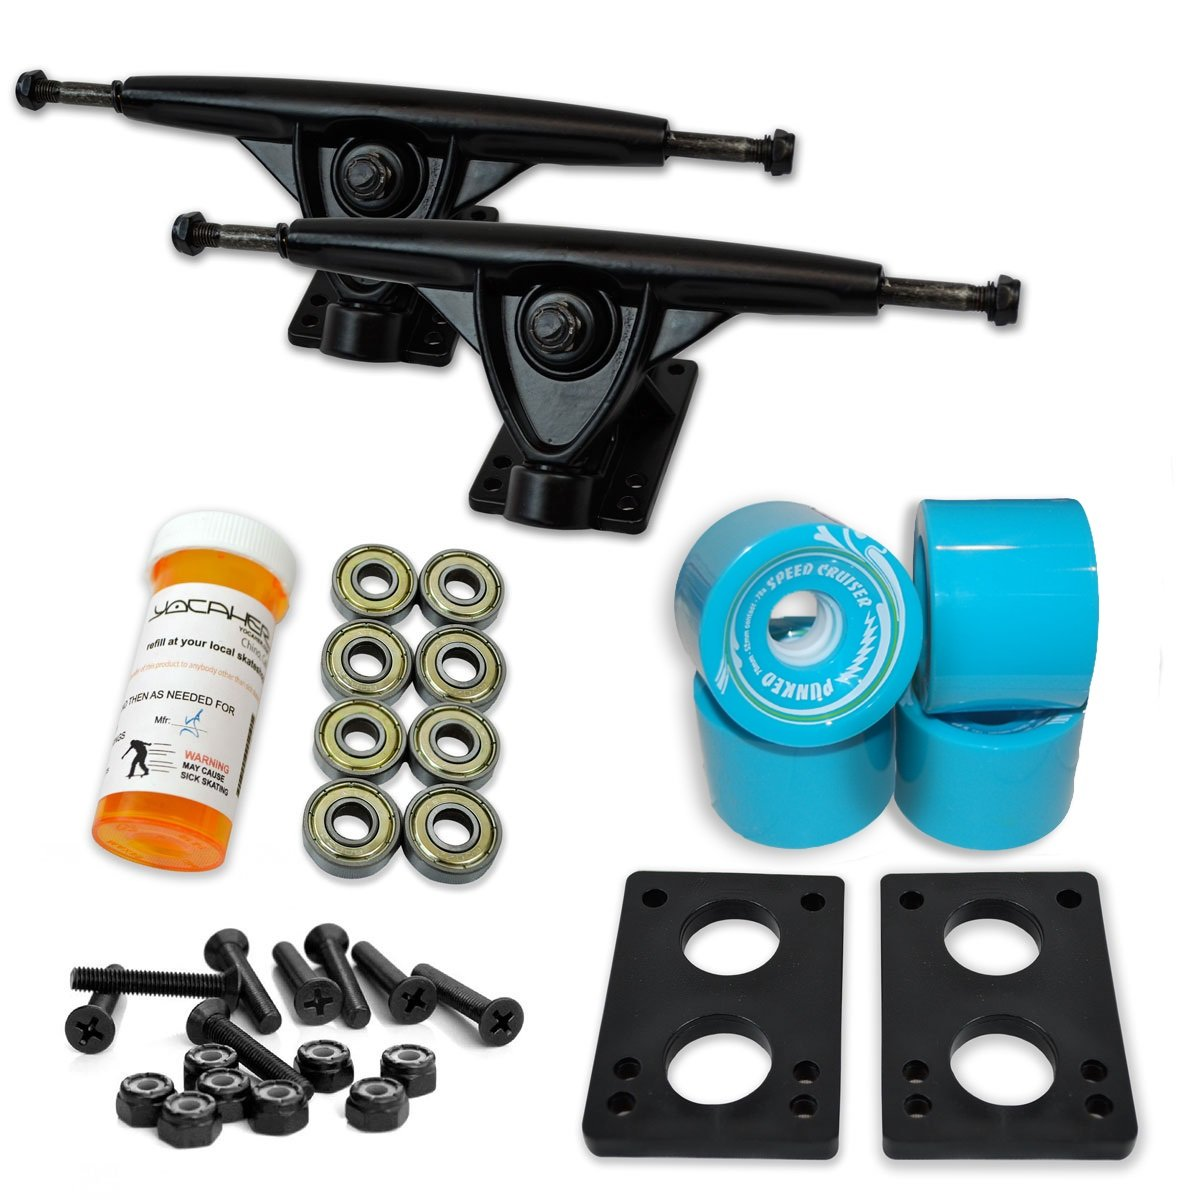 Yocaher Longboard Skateboard Trucks Combo Set w/ 71mm Wheels + 9.675'' Polished/Black Trucks Package (Baby Blue, Black Trucks) by Yocaher